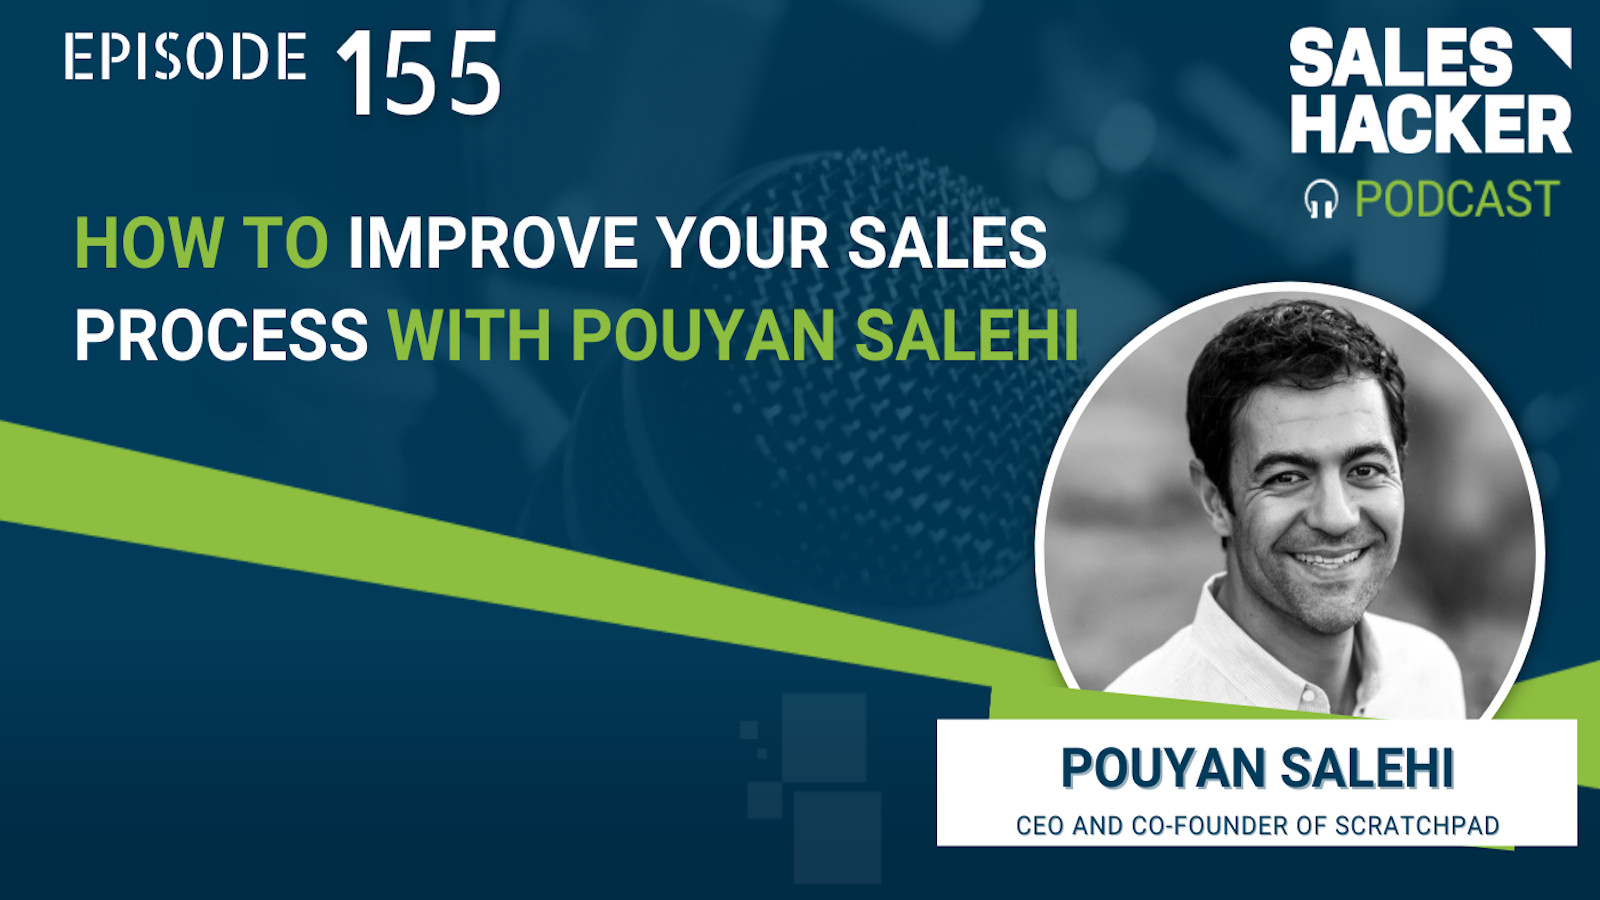 Sales Hacker: How to Improve Your Sales Process with Pouyan Salehi